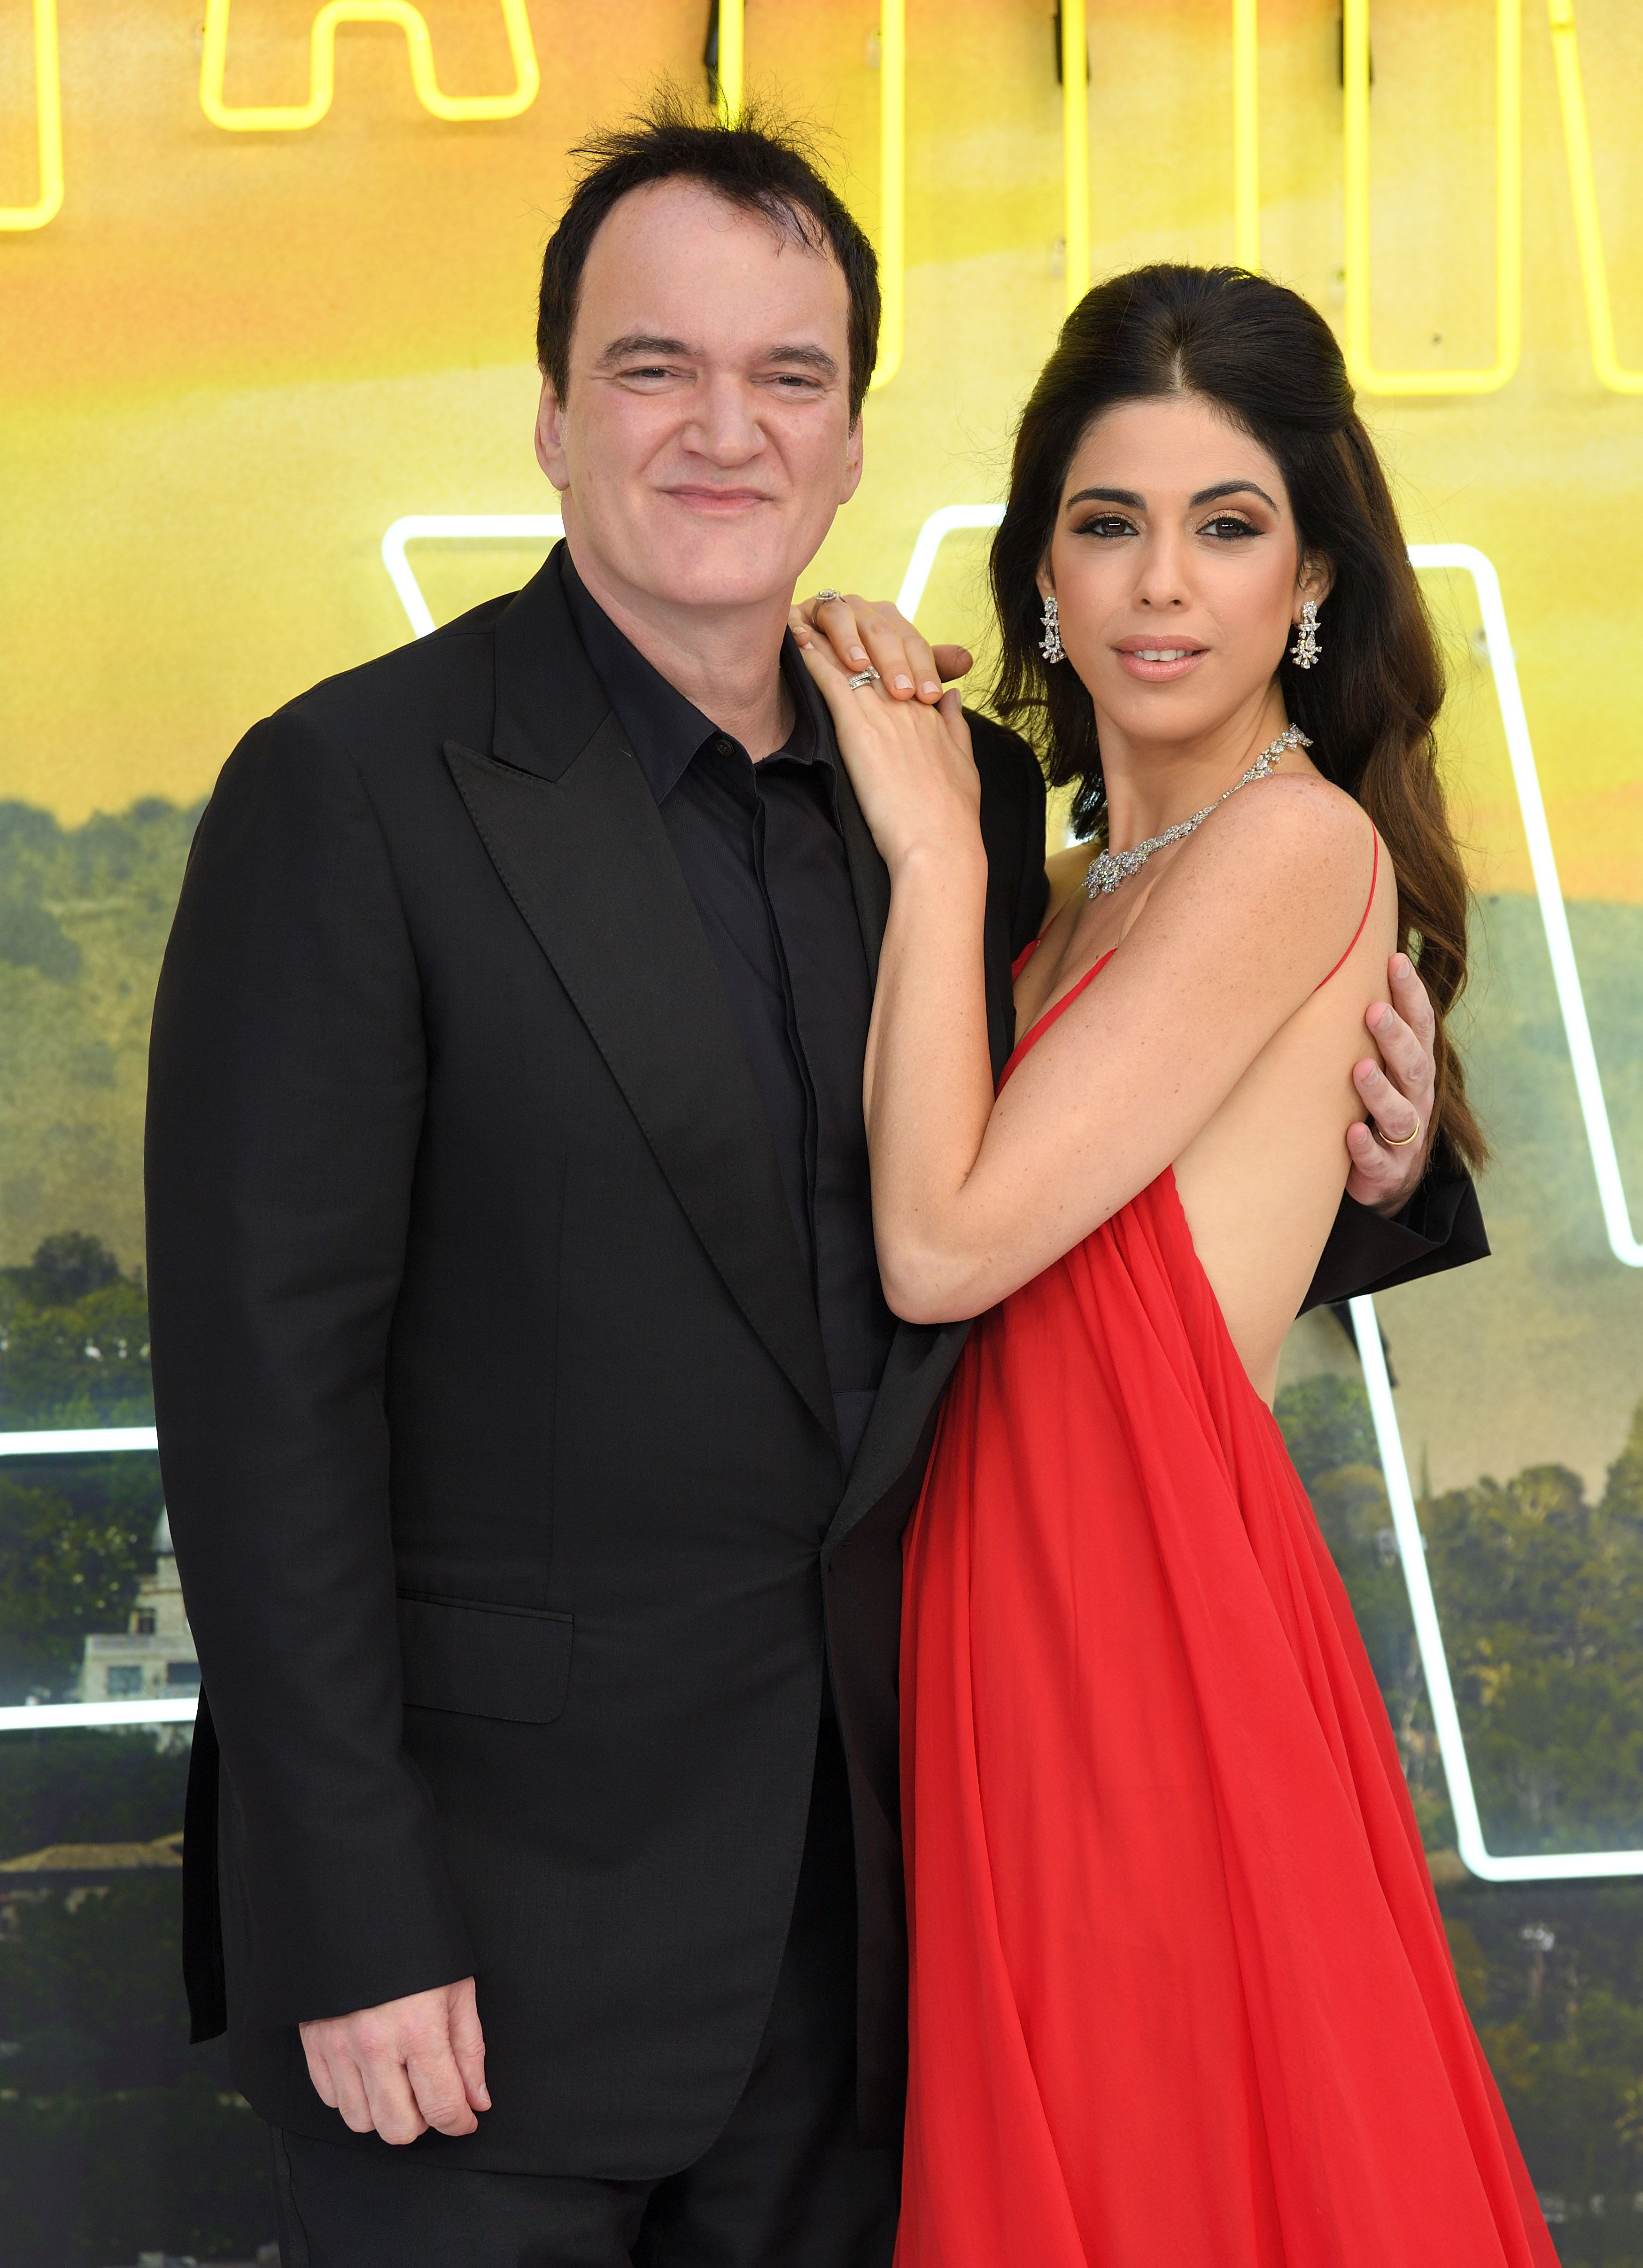 """Quentin Tarantino and Daniella Pick at the """"Once Upon a Time... in Hollywood"""" UK premiere in 2019 in London, England 